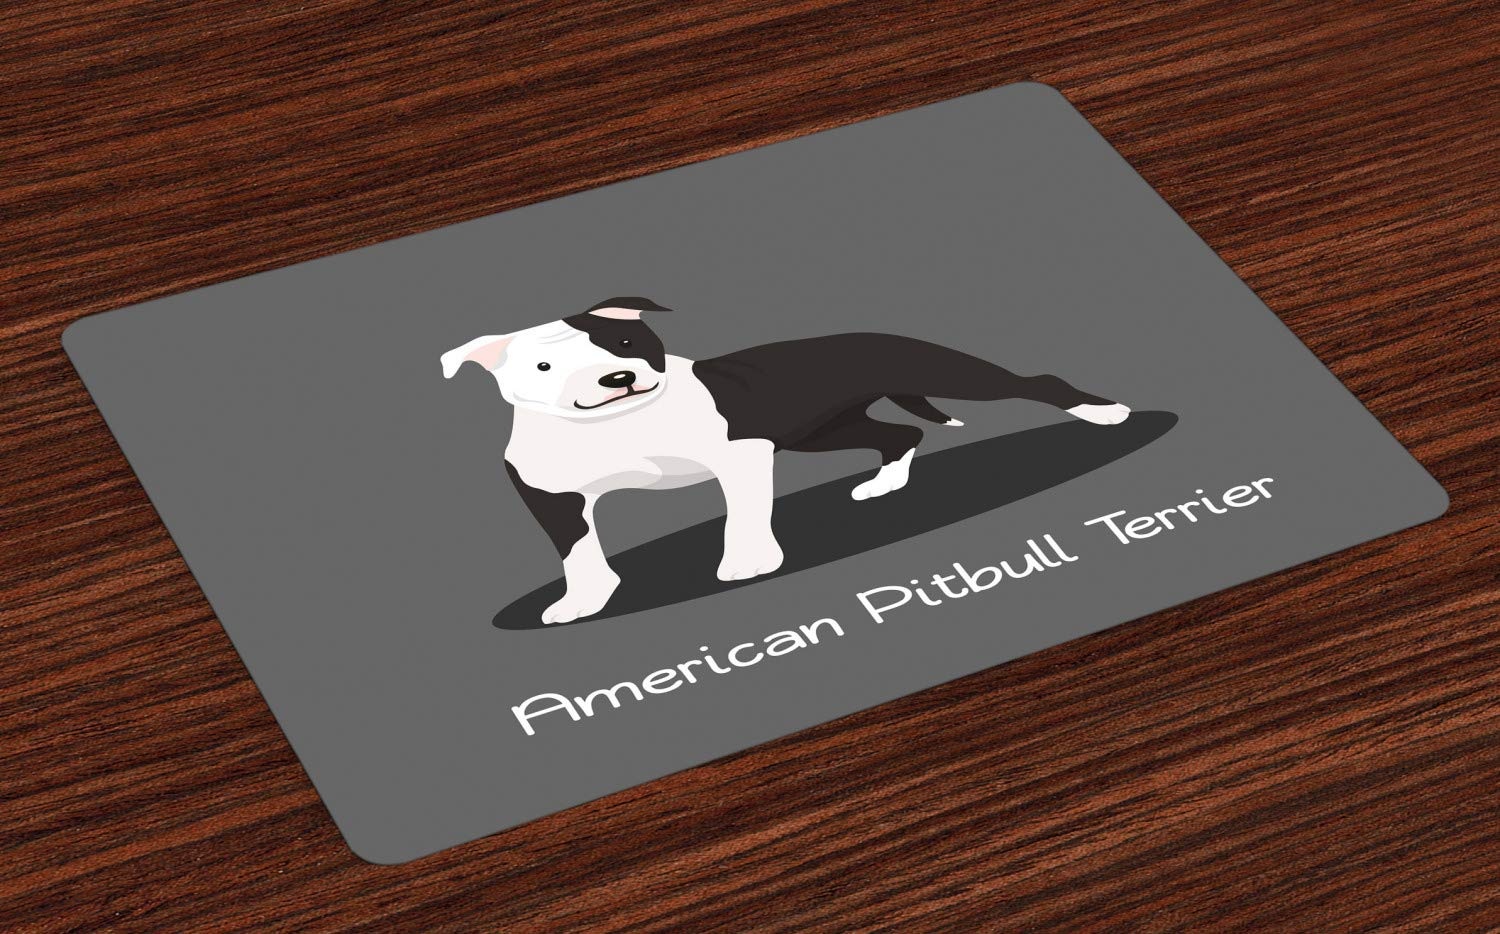 Ambesonne Pitbull Place Mats Set of 4, American Pitbull Terrier Pet Cartoon Illustration Graphic Design on Grey Background, Washable Fabric Placemats for Dining Room Kitchen Table Decor, Multicolor